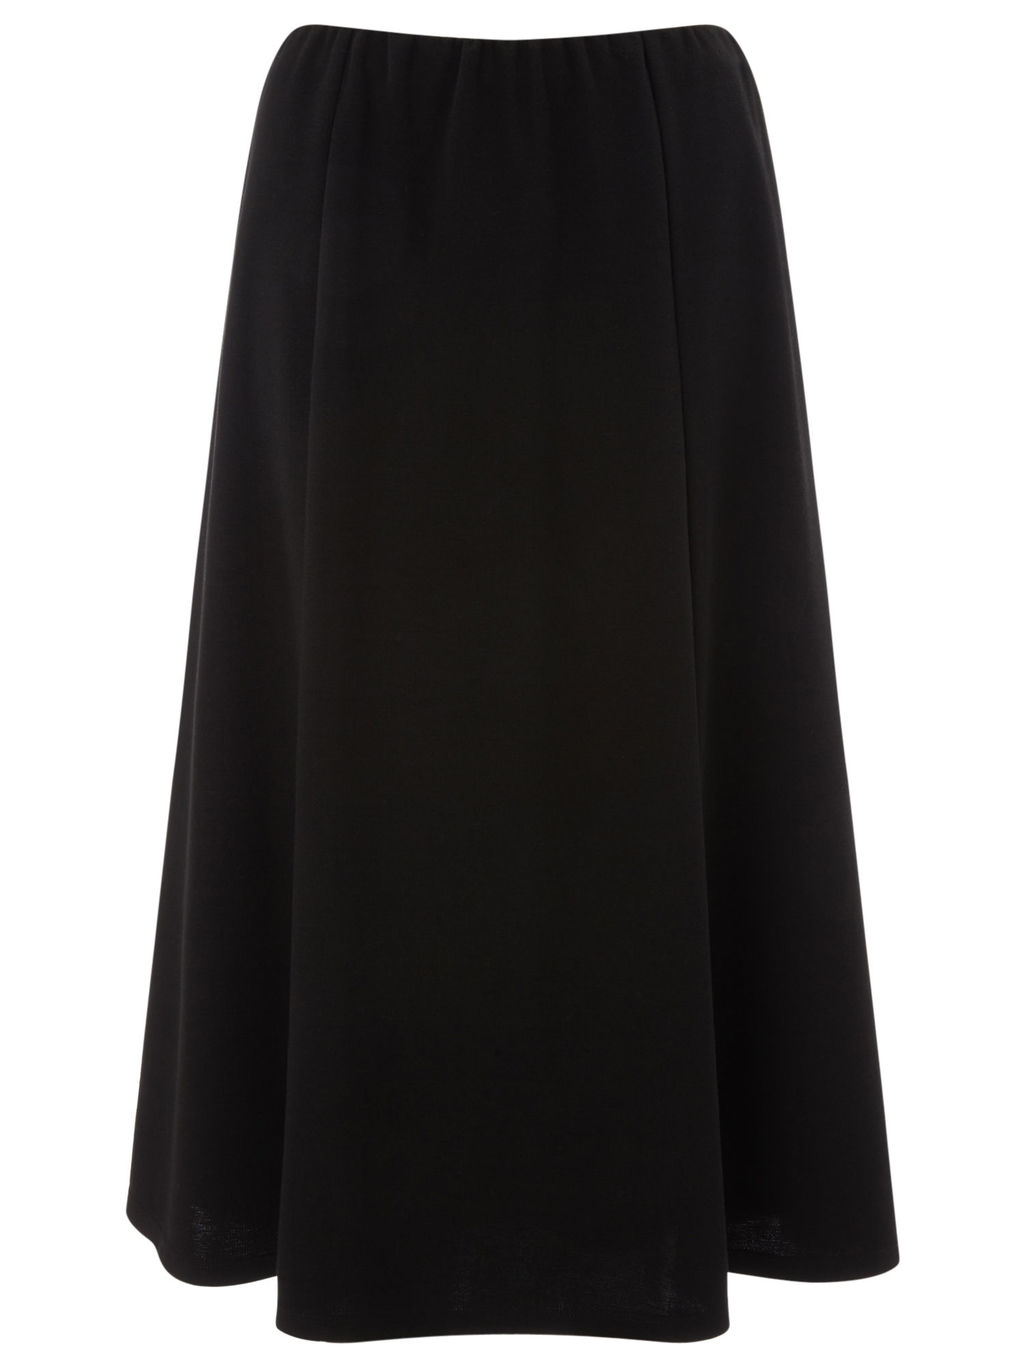 Pull On Ponte Skirt - length: calf length; pattern: plain; fit: loose/voluminous; waist detail: elasticated waist; waist: mid/regular rise; predominant colour: black; occasions: work; style: a-line; fibres: polyester/polyamide - stretch; hip detail: adds bulk at the hips; pattern type: fabric; texture group: other - light to midweight; season: a/w 2015; wardrobe: basic